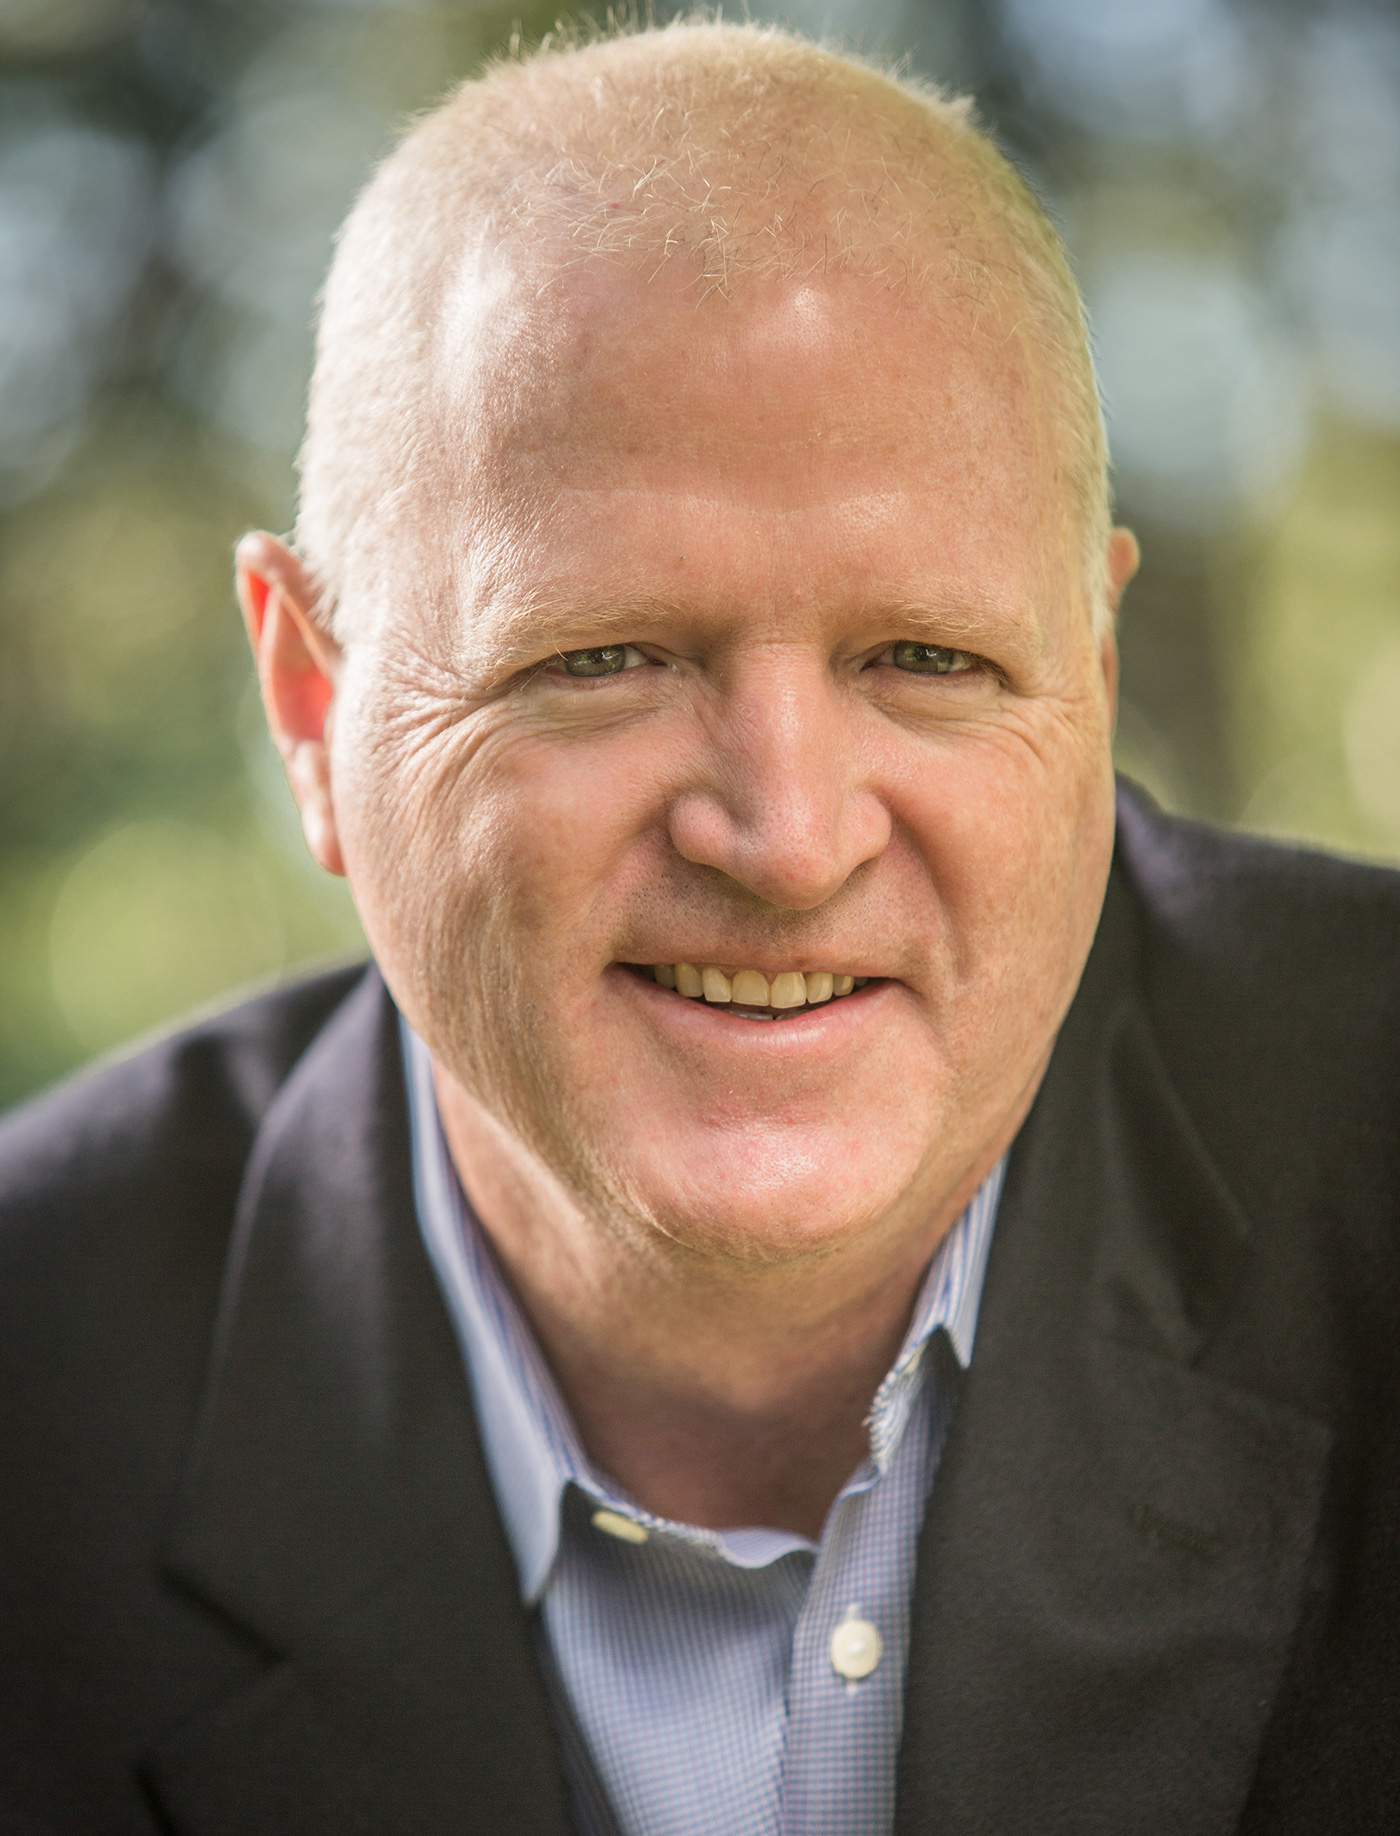 Pat McQuillan, Chief Executive Officer